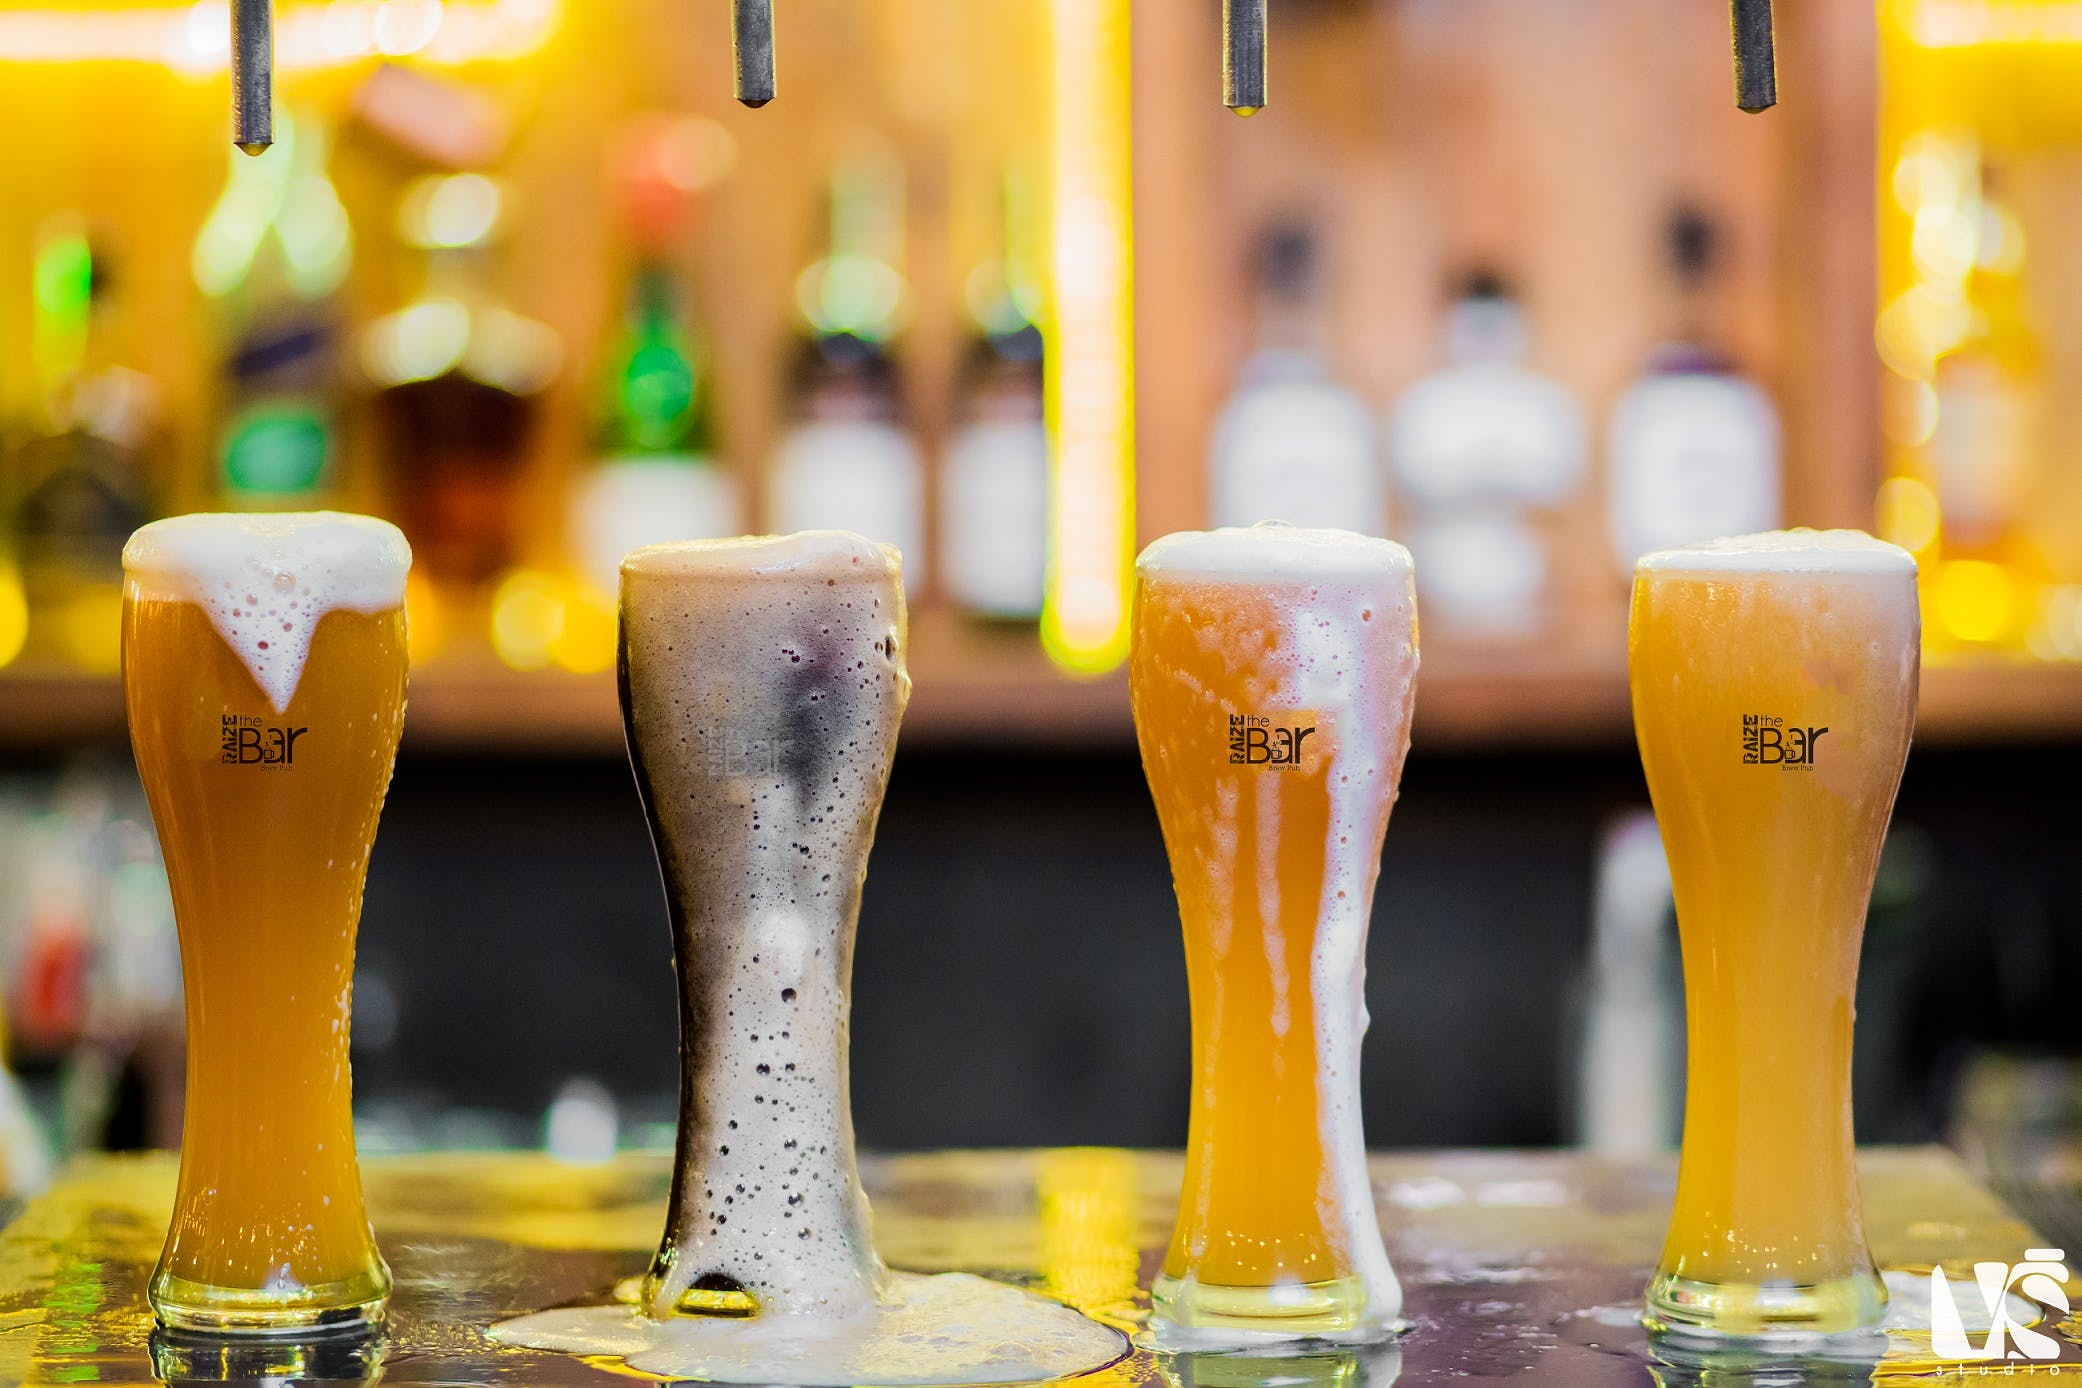 Beer glass,Drink,Yellow,Beer,Wheat beer,Drinkware,Champagne cocktail,Alcohol,Champagne stemware